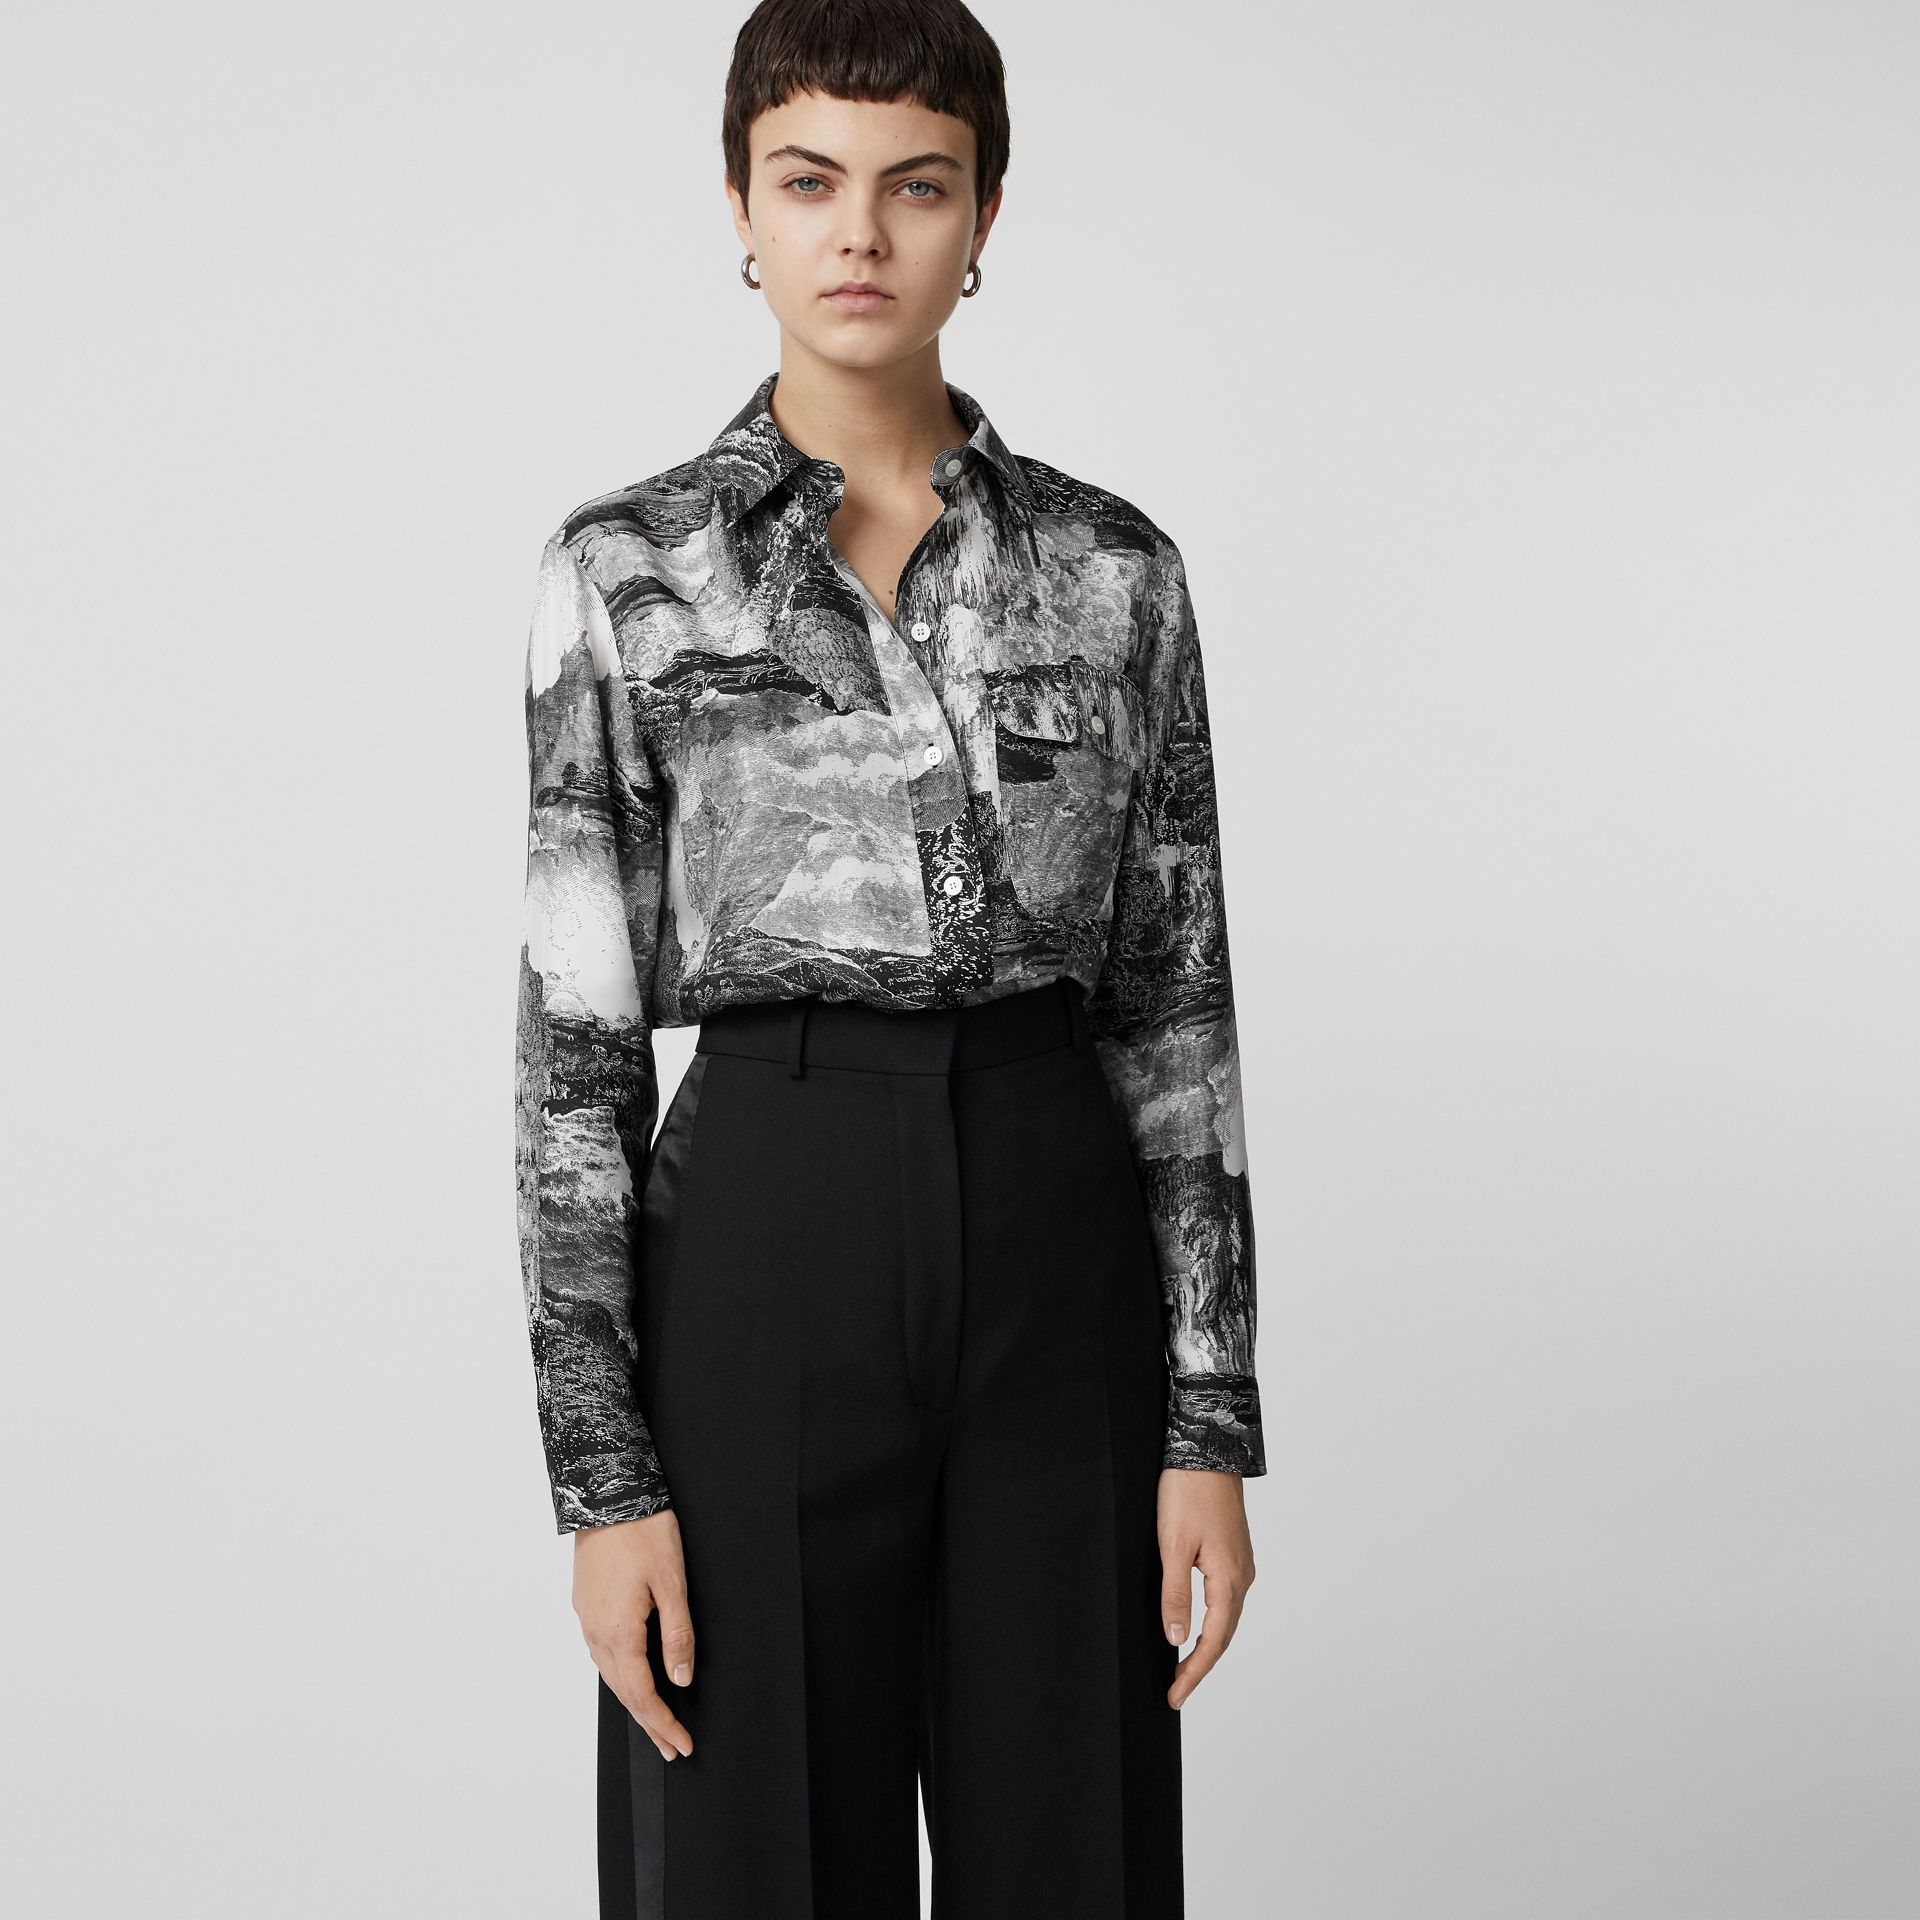 Dreamscape Print Silk Longline Shirt in Black - Women | Burberry United States - gallery image 5